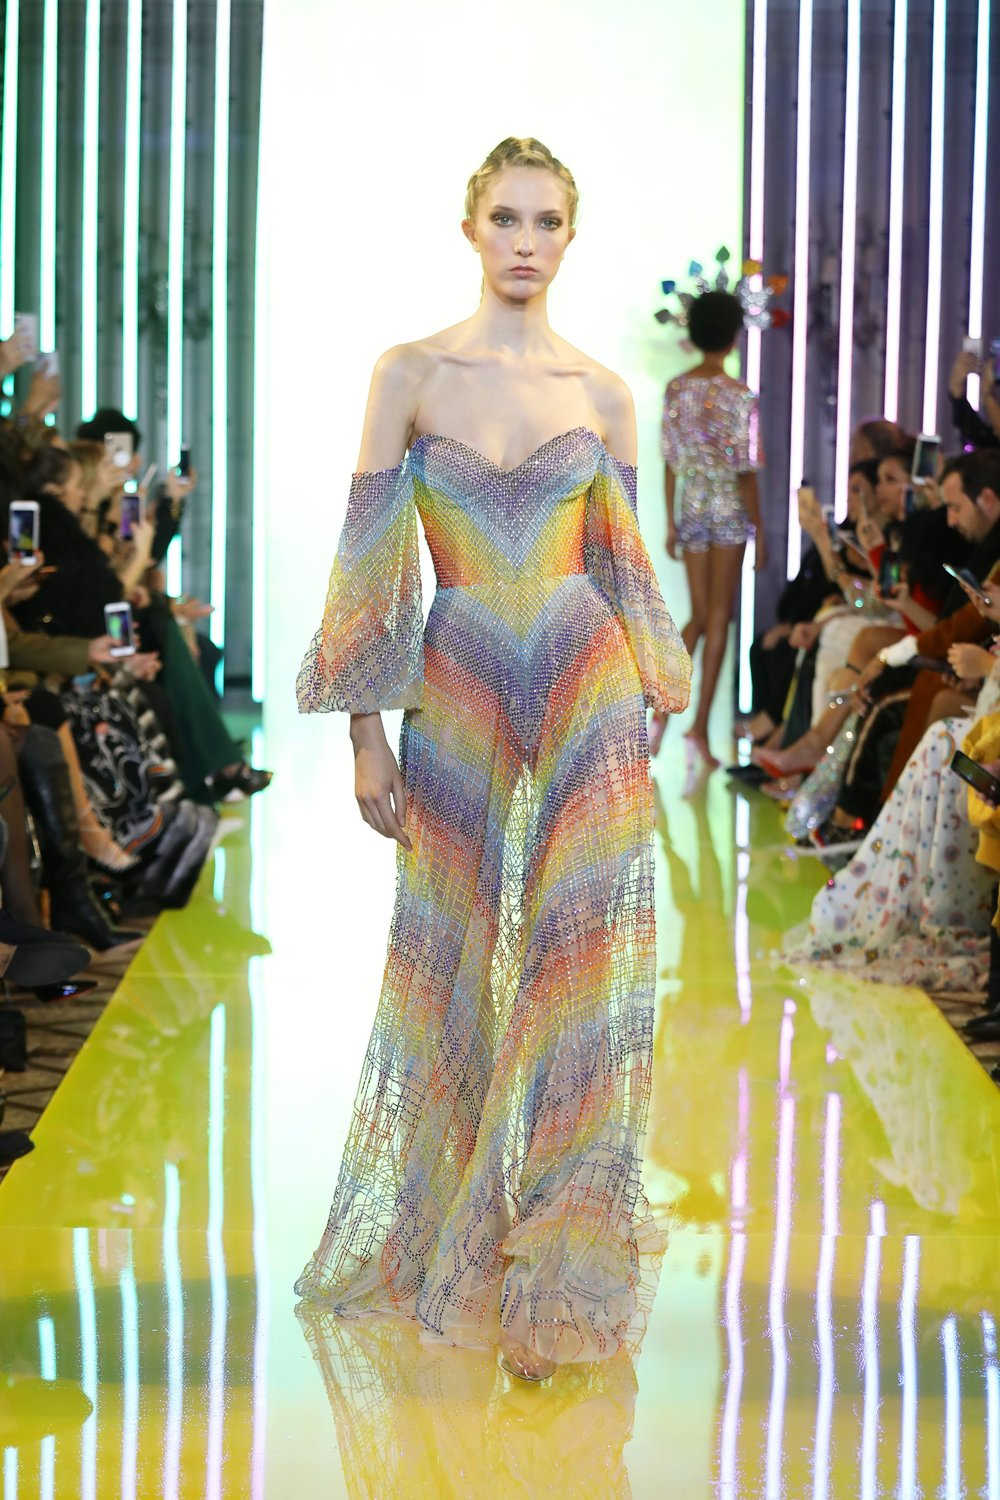 SS19-5 Rainbow Colored See-Through Dress Embellished With Beads And Swarovski Crystals, Featuring Puffy Sleeves .jpg